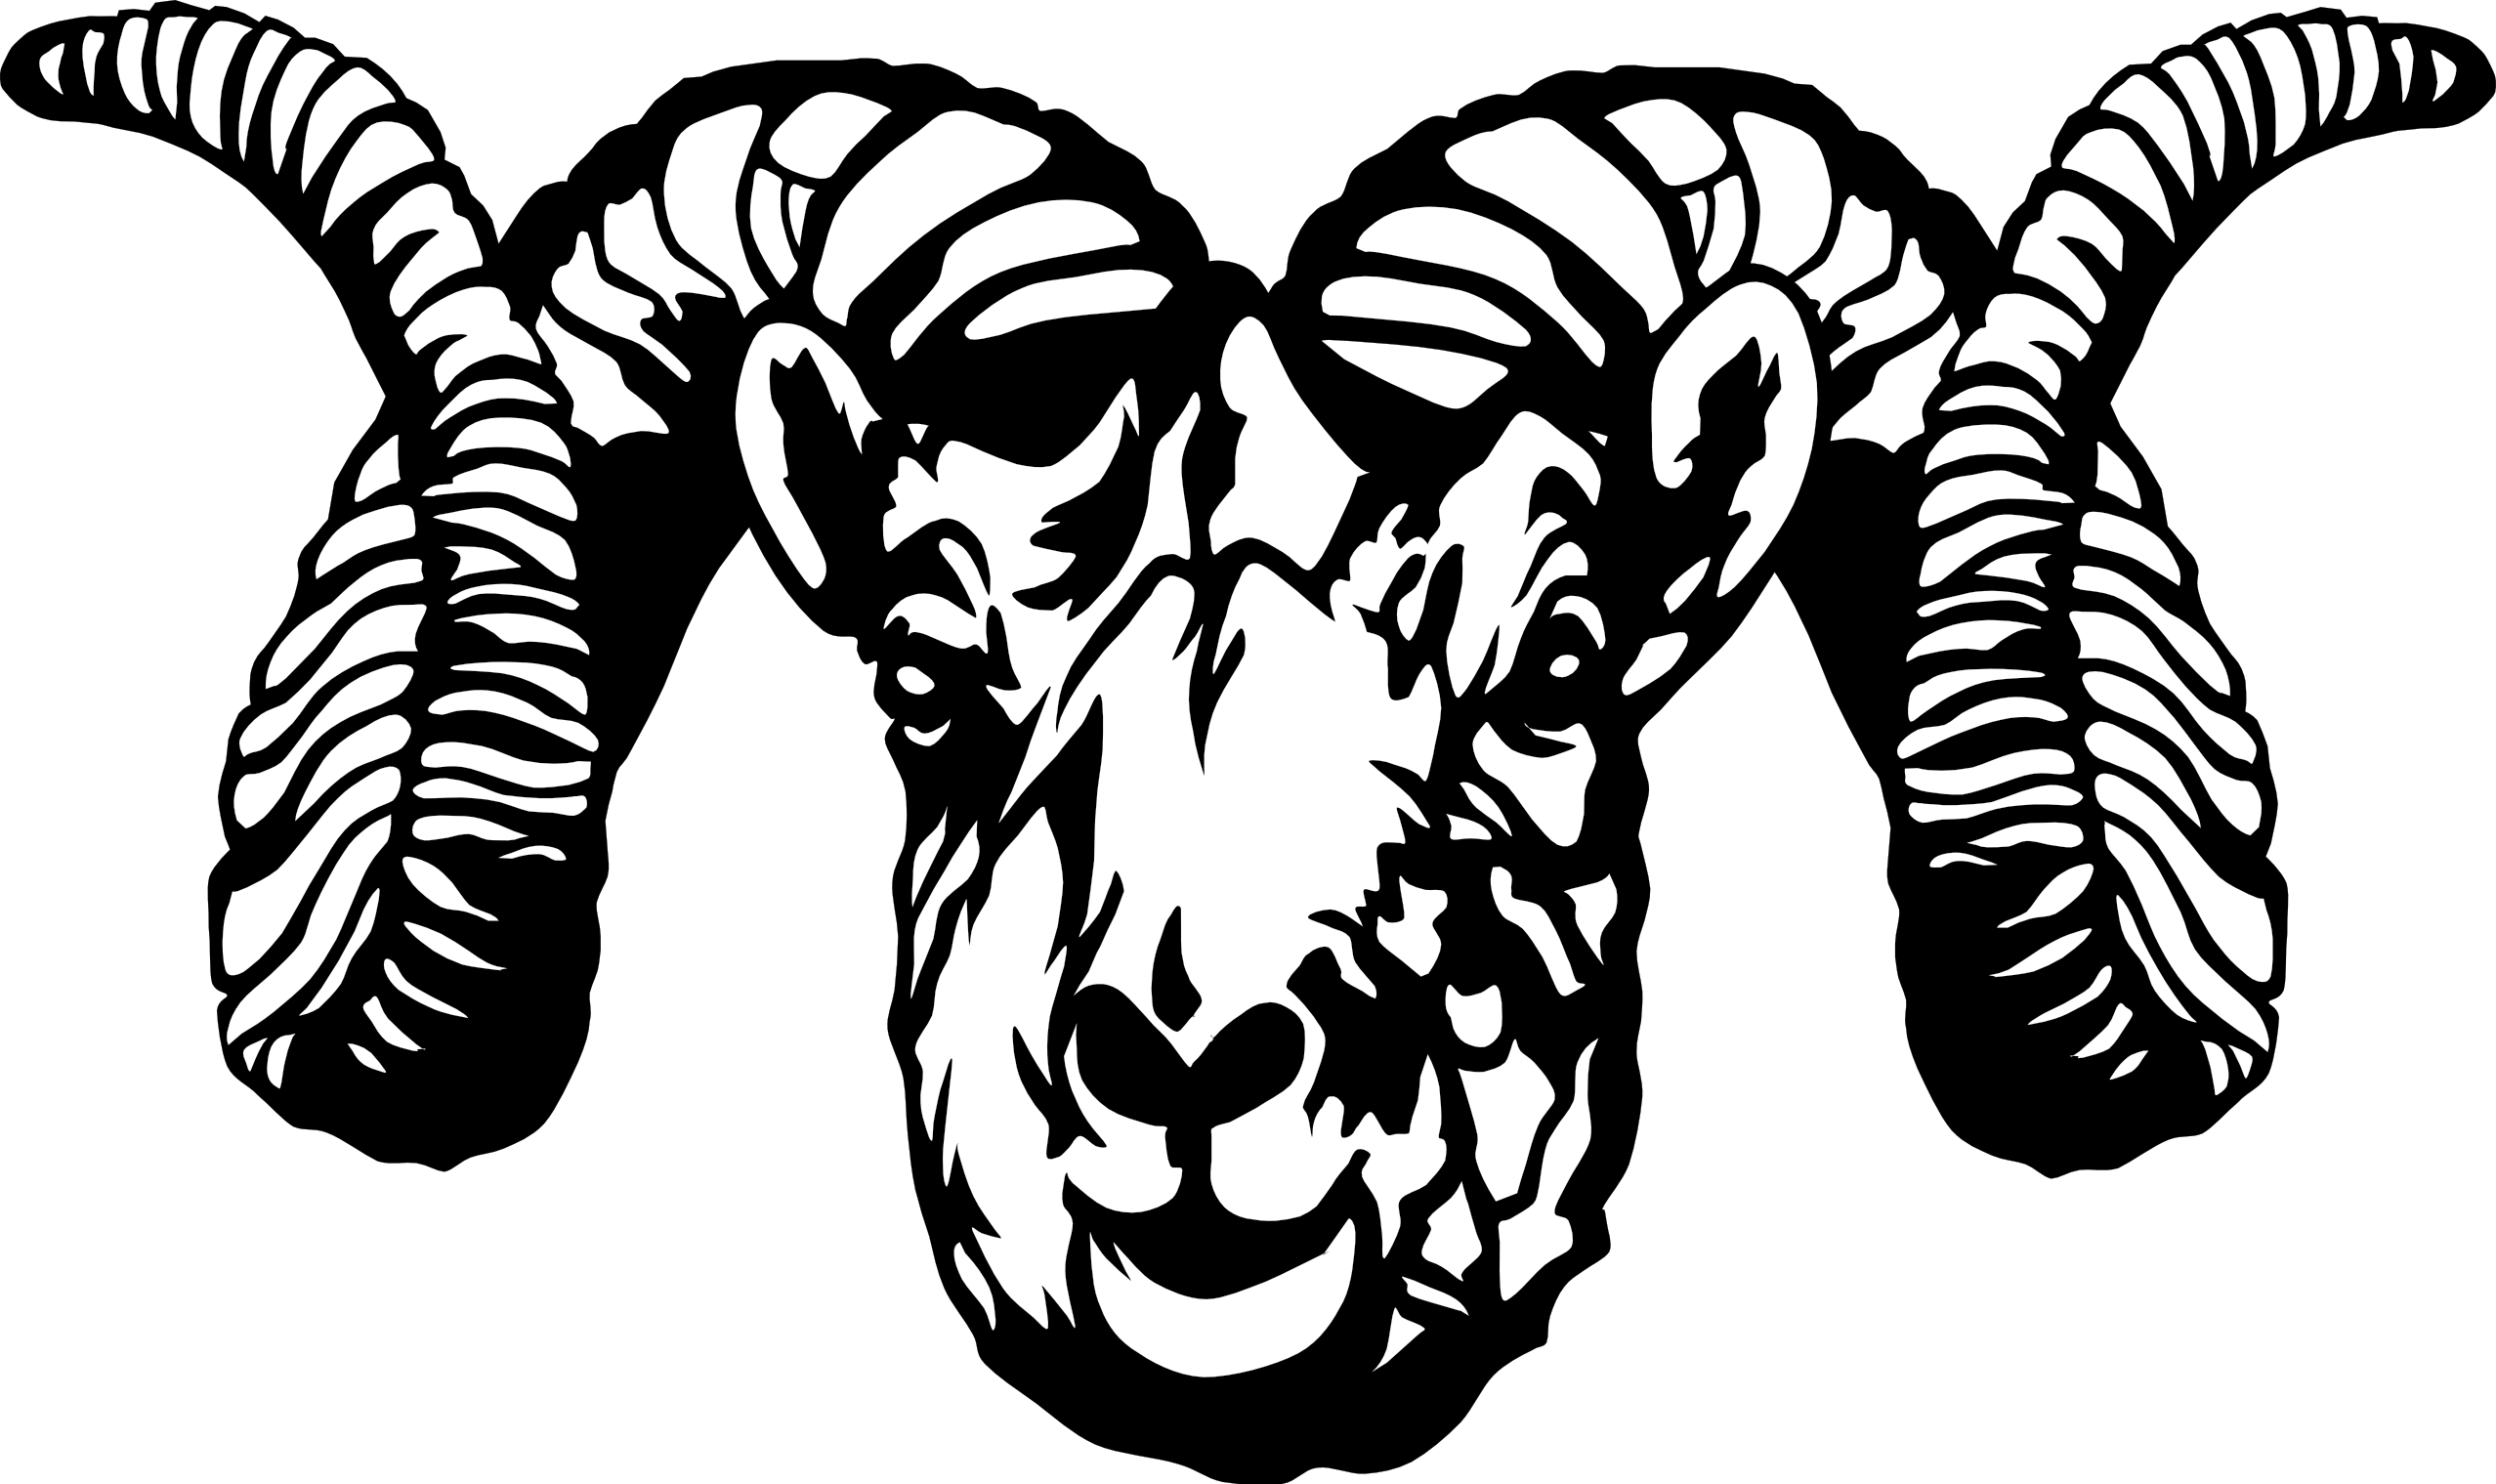 png download Panda free images clip. Ram clipart black and white